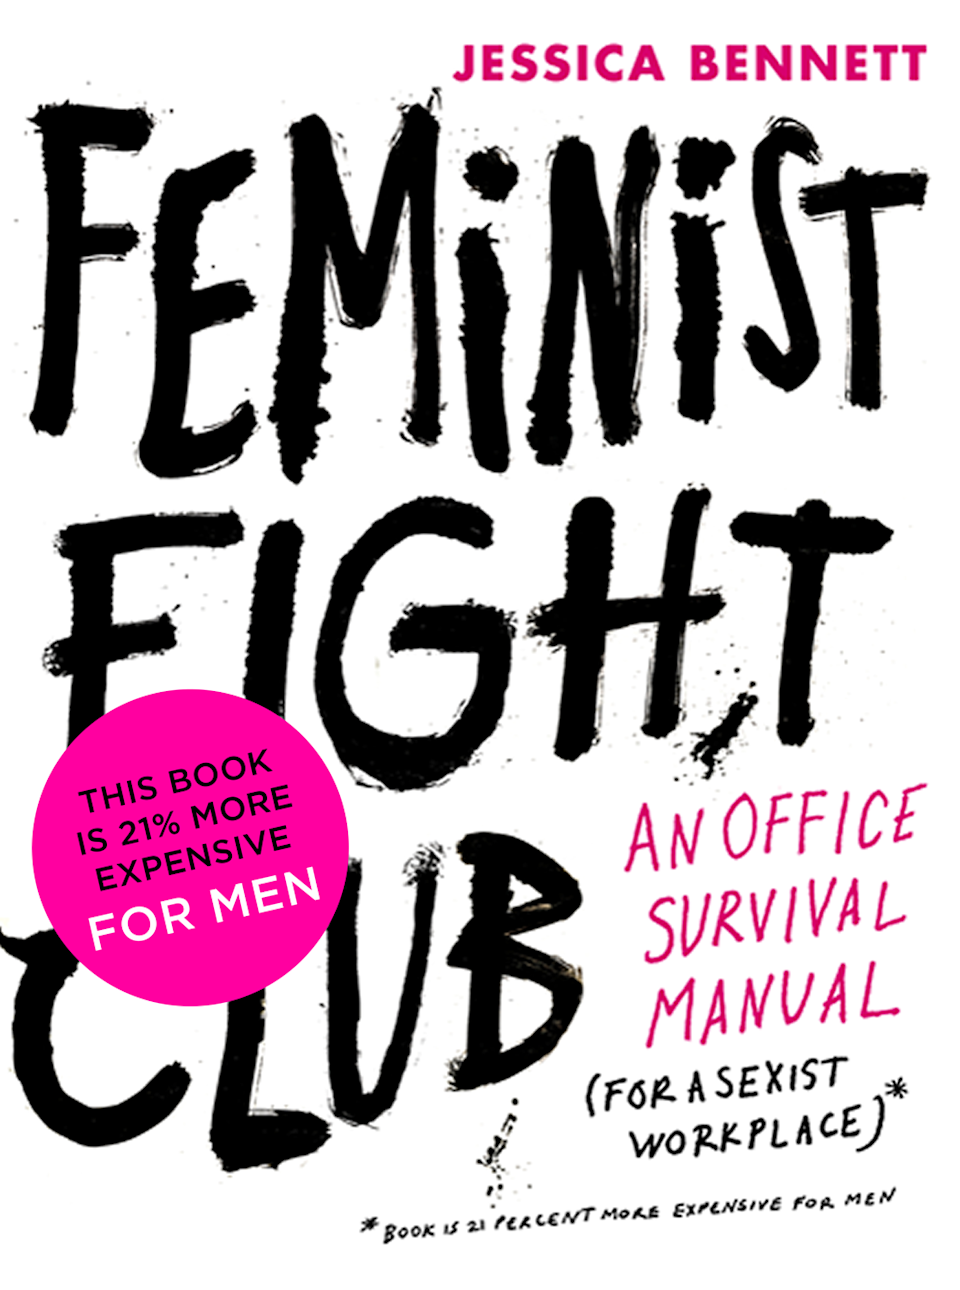 """<p><strong><em>Feminist Fight Club</em></strong></p><p>By Jessica Bennett</p><p>""""If this were an equal world, this book wouldn't have to exist,"""" says the author of <em>Feminist Fight Club</em>. Journalist Jessica Bennett had had enough of micro-aggressions, unconscious bias, colleagues 'manterrupting' her in meetings and men 'bro-propriating' her ideas, so she created this seriously useful guide for battling workplace sexism.</p><p>Endorsed by Facebook COO and <em>Lean In</em> author, Sheryl Sandberg, <em>Feminist Fight Club</em> is a perfect gift for the friend who just needs a little push to start standing up for herself.</p>"""